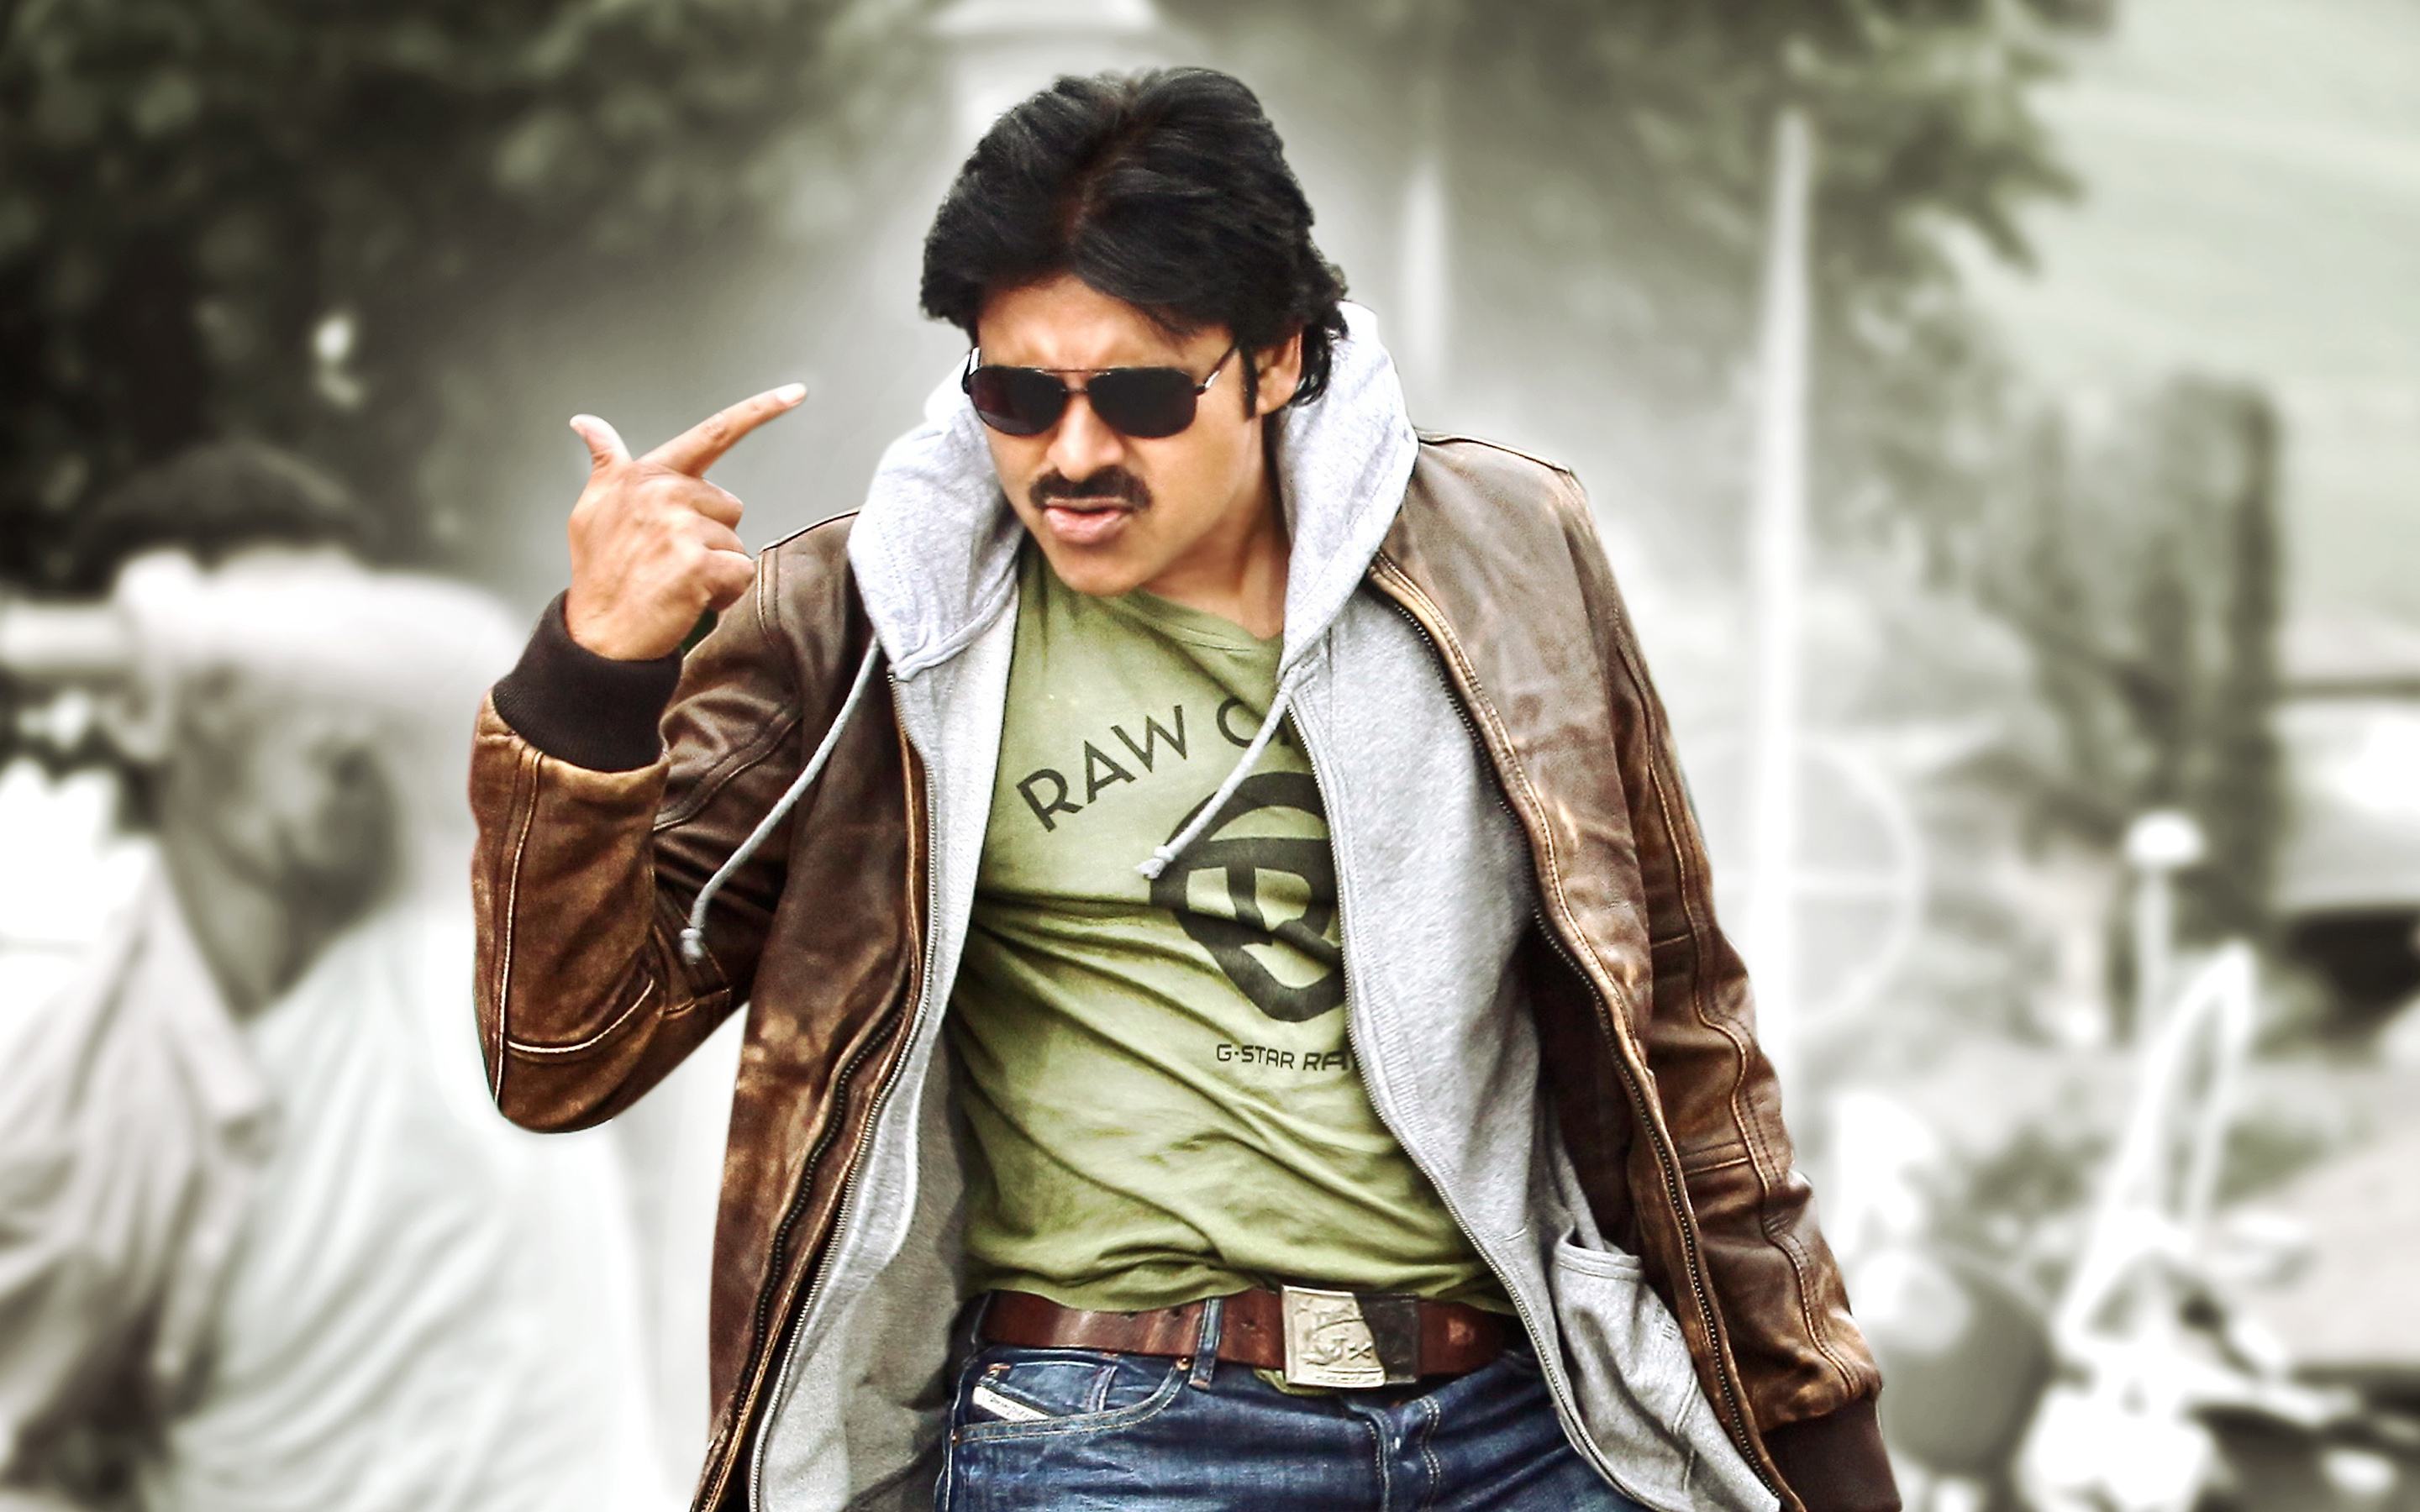 Download-Pawan-Kalyan-HD-Widescreen-from-the-above-resolutions-If-you-don%E2%80%99t-f-wallpaper-wp5604473